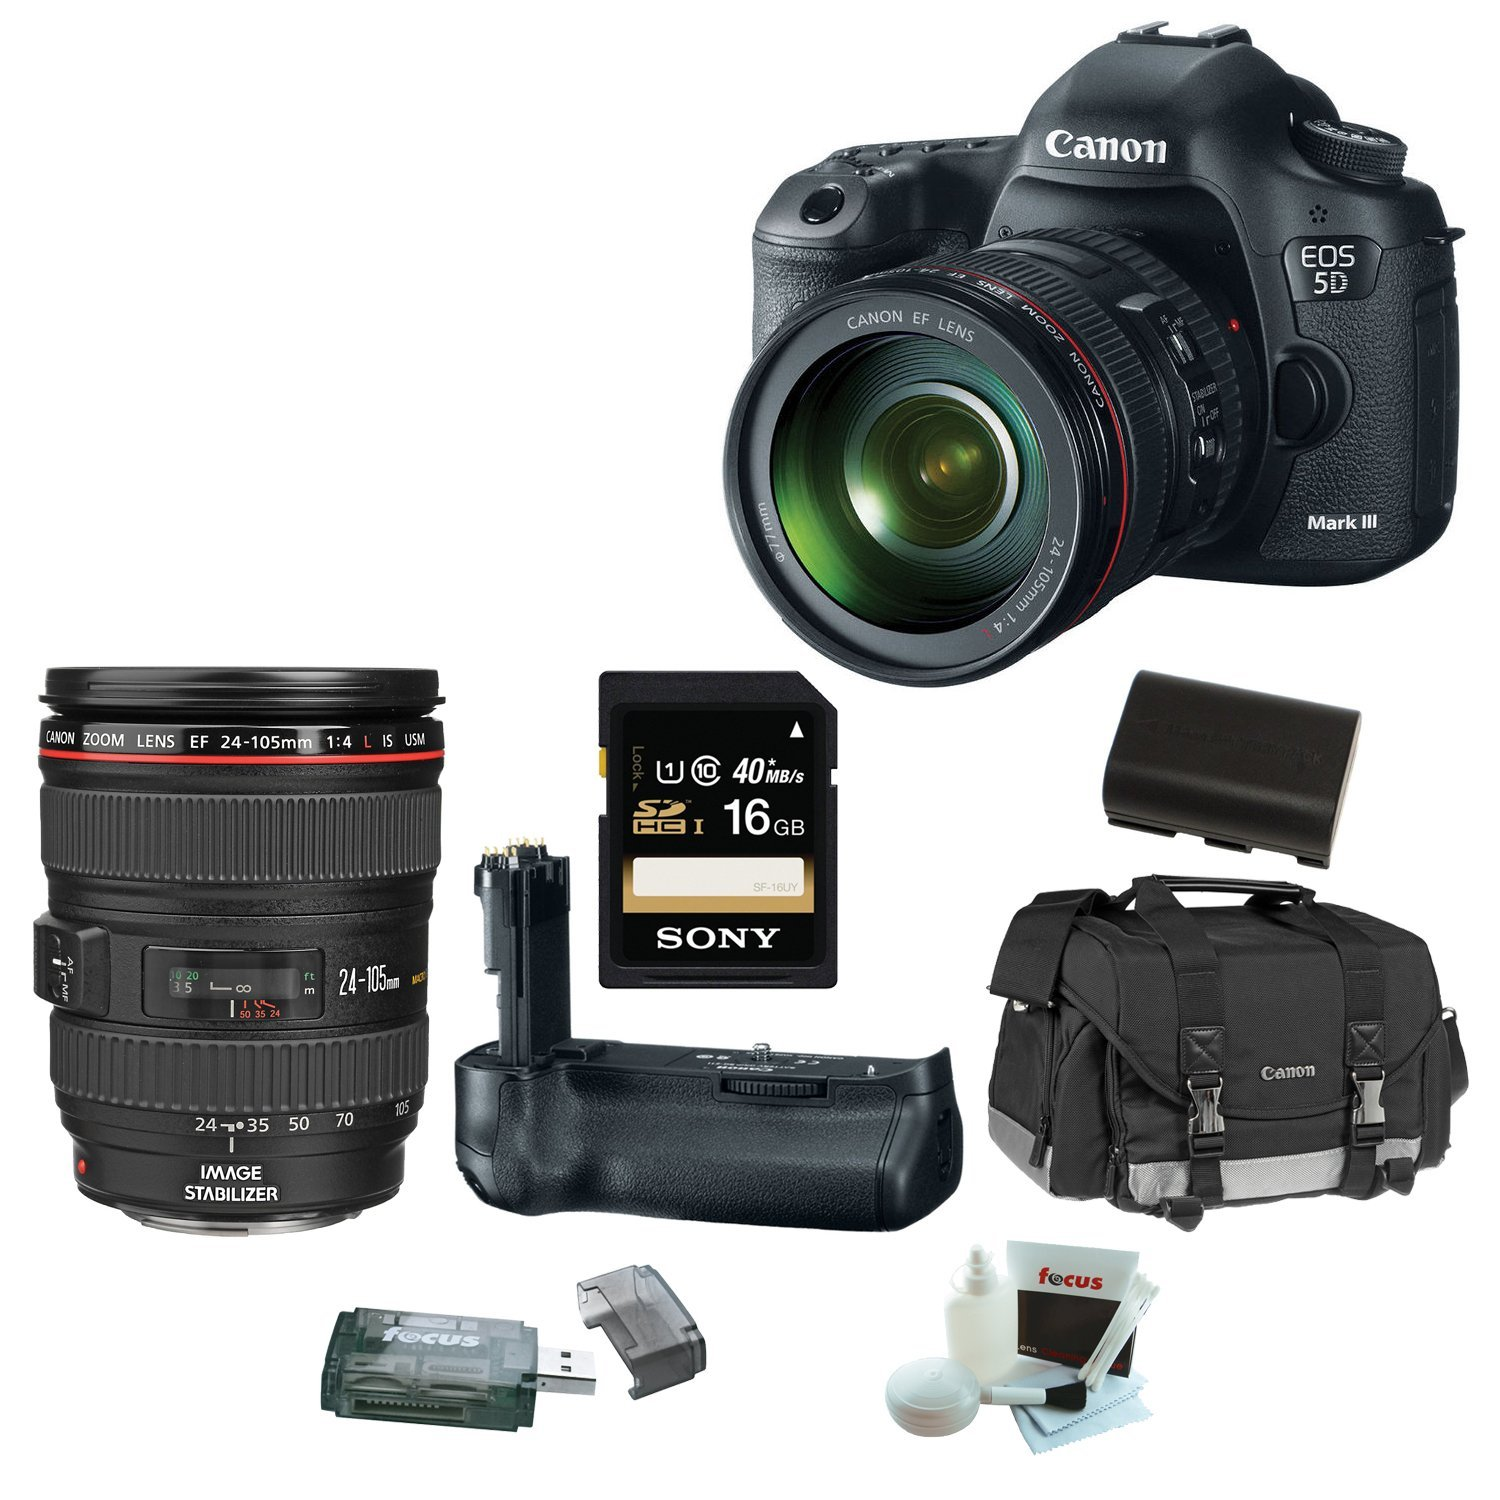 Canon EOS 5D Mark III 22.3 MP Full Frame CMOS Digital SLR Camera with EF 24-105mm f/4 L IS USM Lens + Canon BG-E11 Battery Grip + Canon Gadget Bag + 16GB Accessory Kit